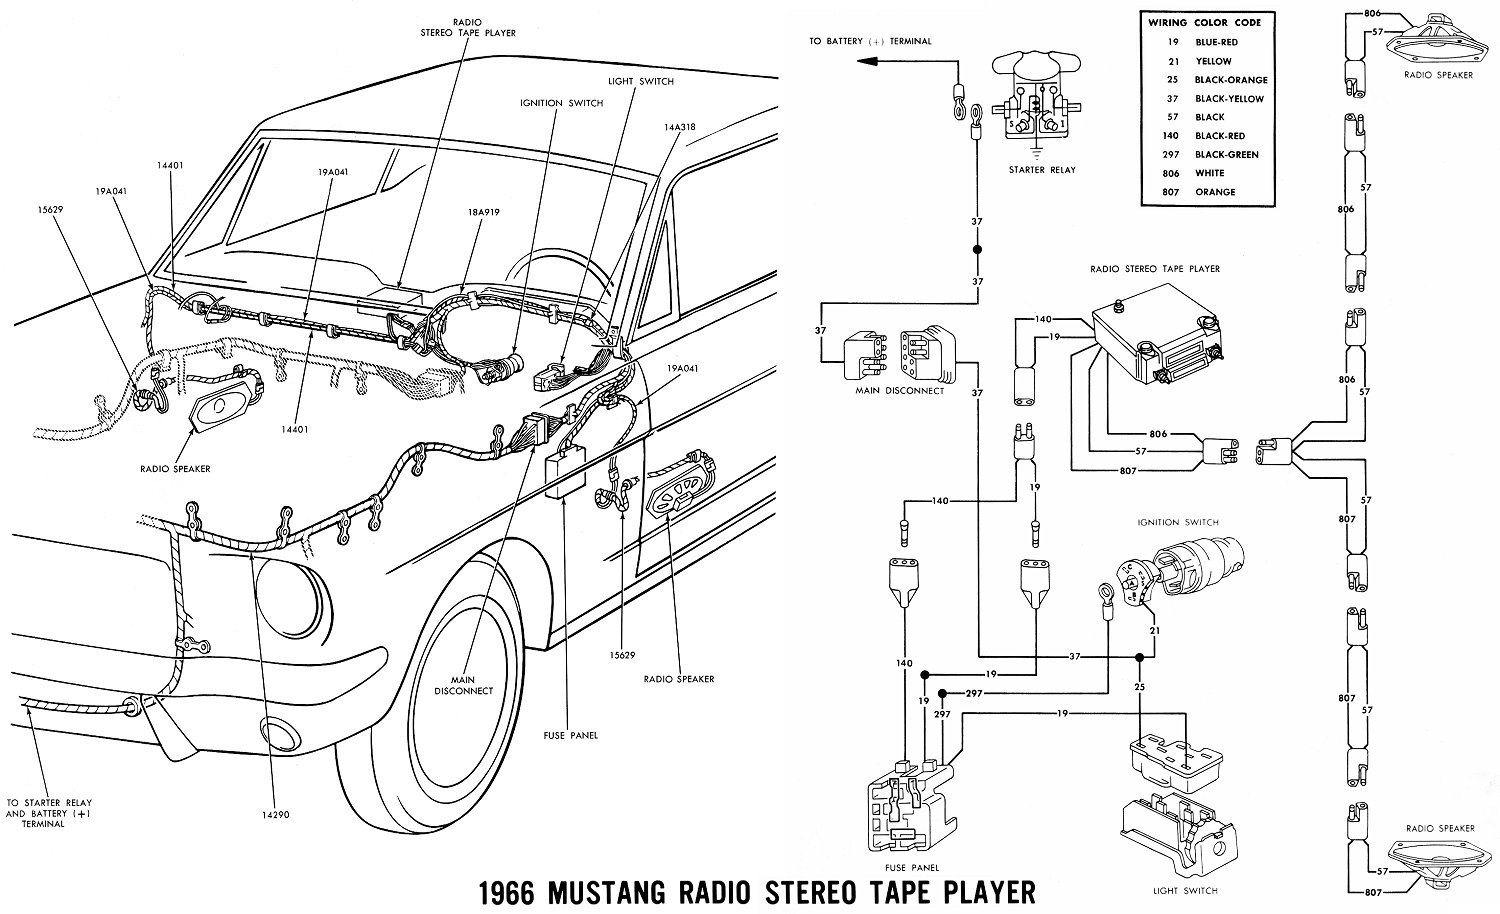 1966 Mustang Wiring Diagrams Average Joe Restoration 66 Mustang Fuse Diagram  66 Mustang Radio Wiring Diagram